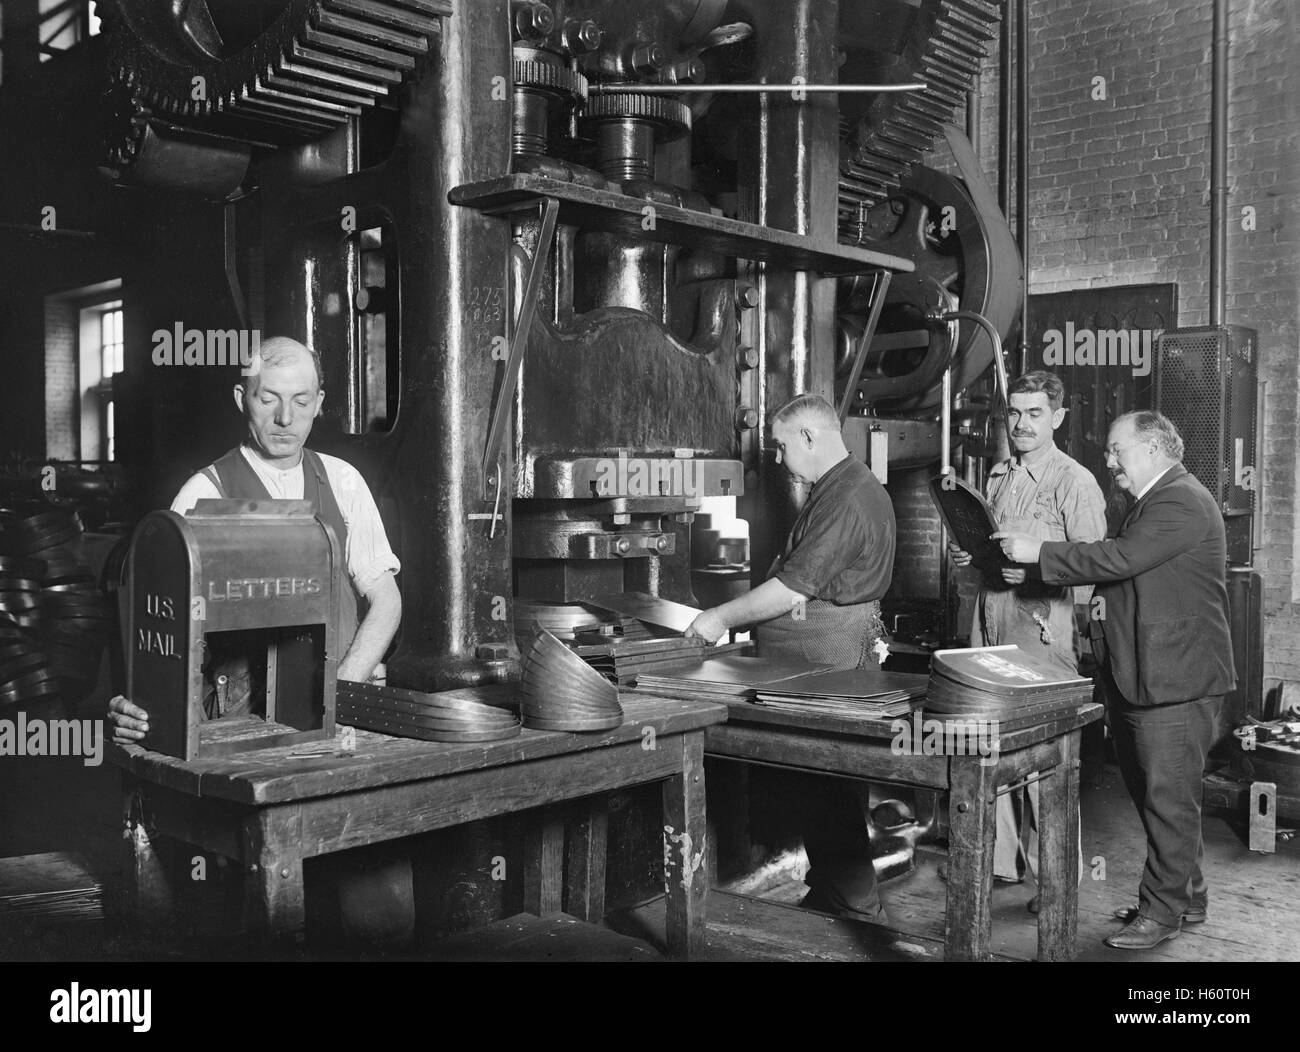 Arbeiter machen Postfächer, Washington Navy Yard, Washington DC, USA, National Photo Company, November 1922 Stockbild